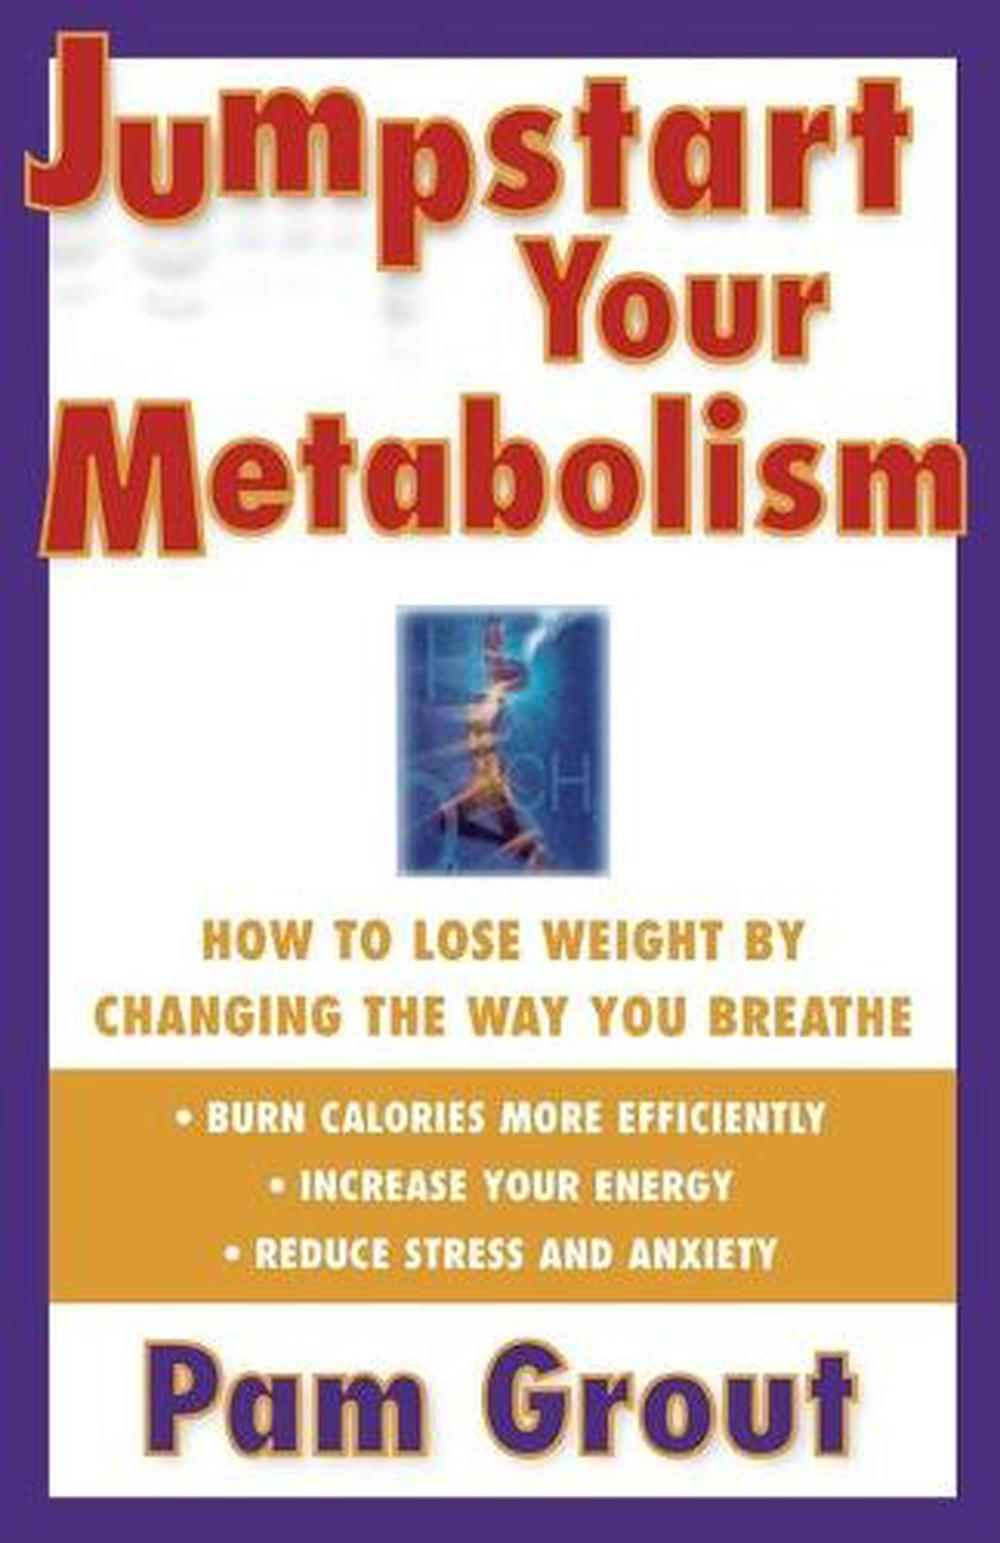 Jumpstart Your Metabolism: How to Lose Weight by Changing the Way You Breathe